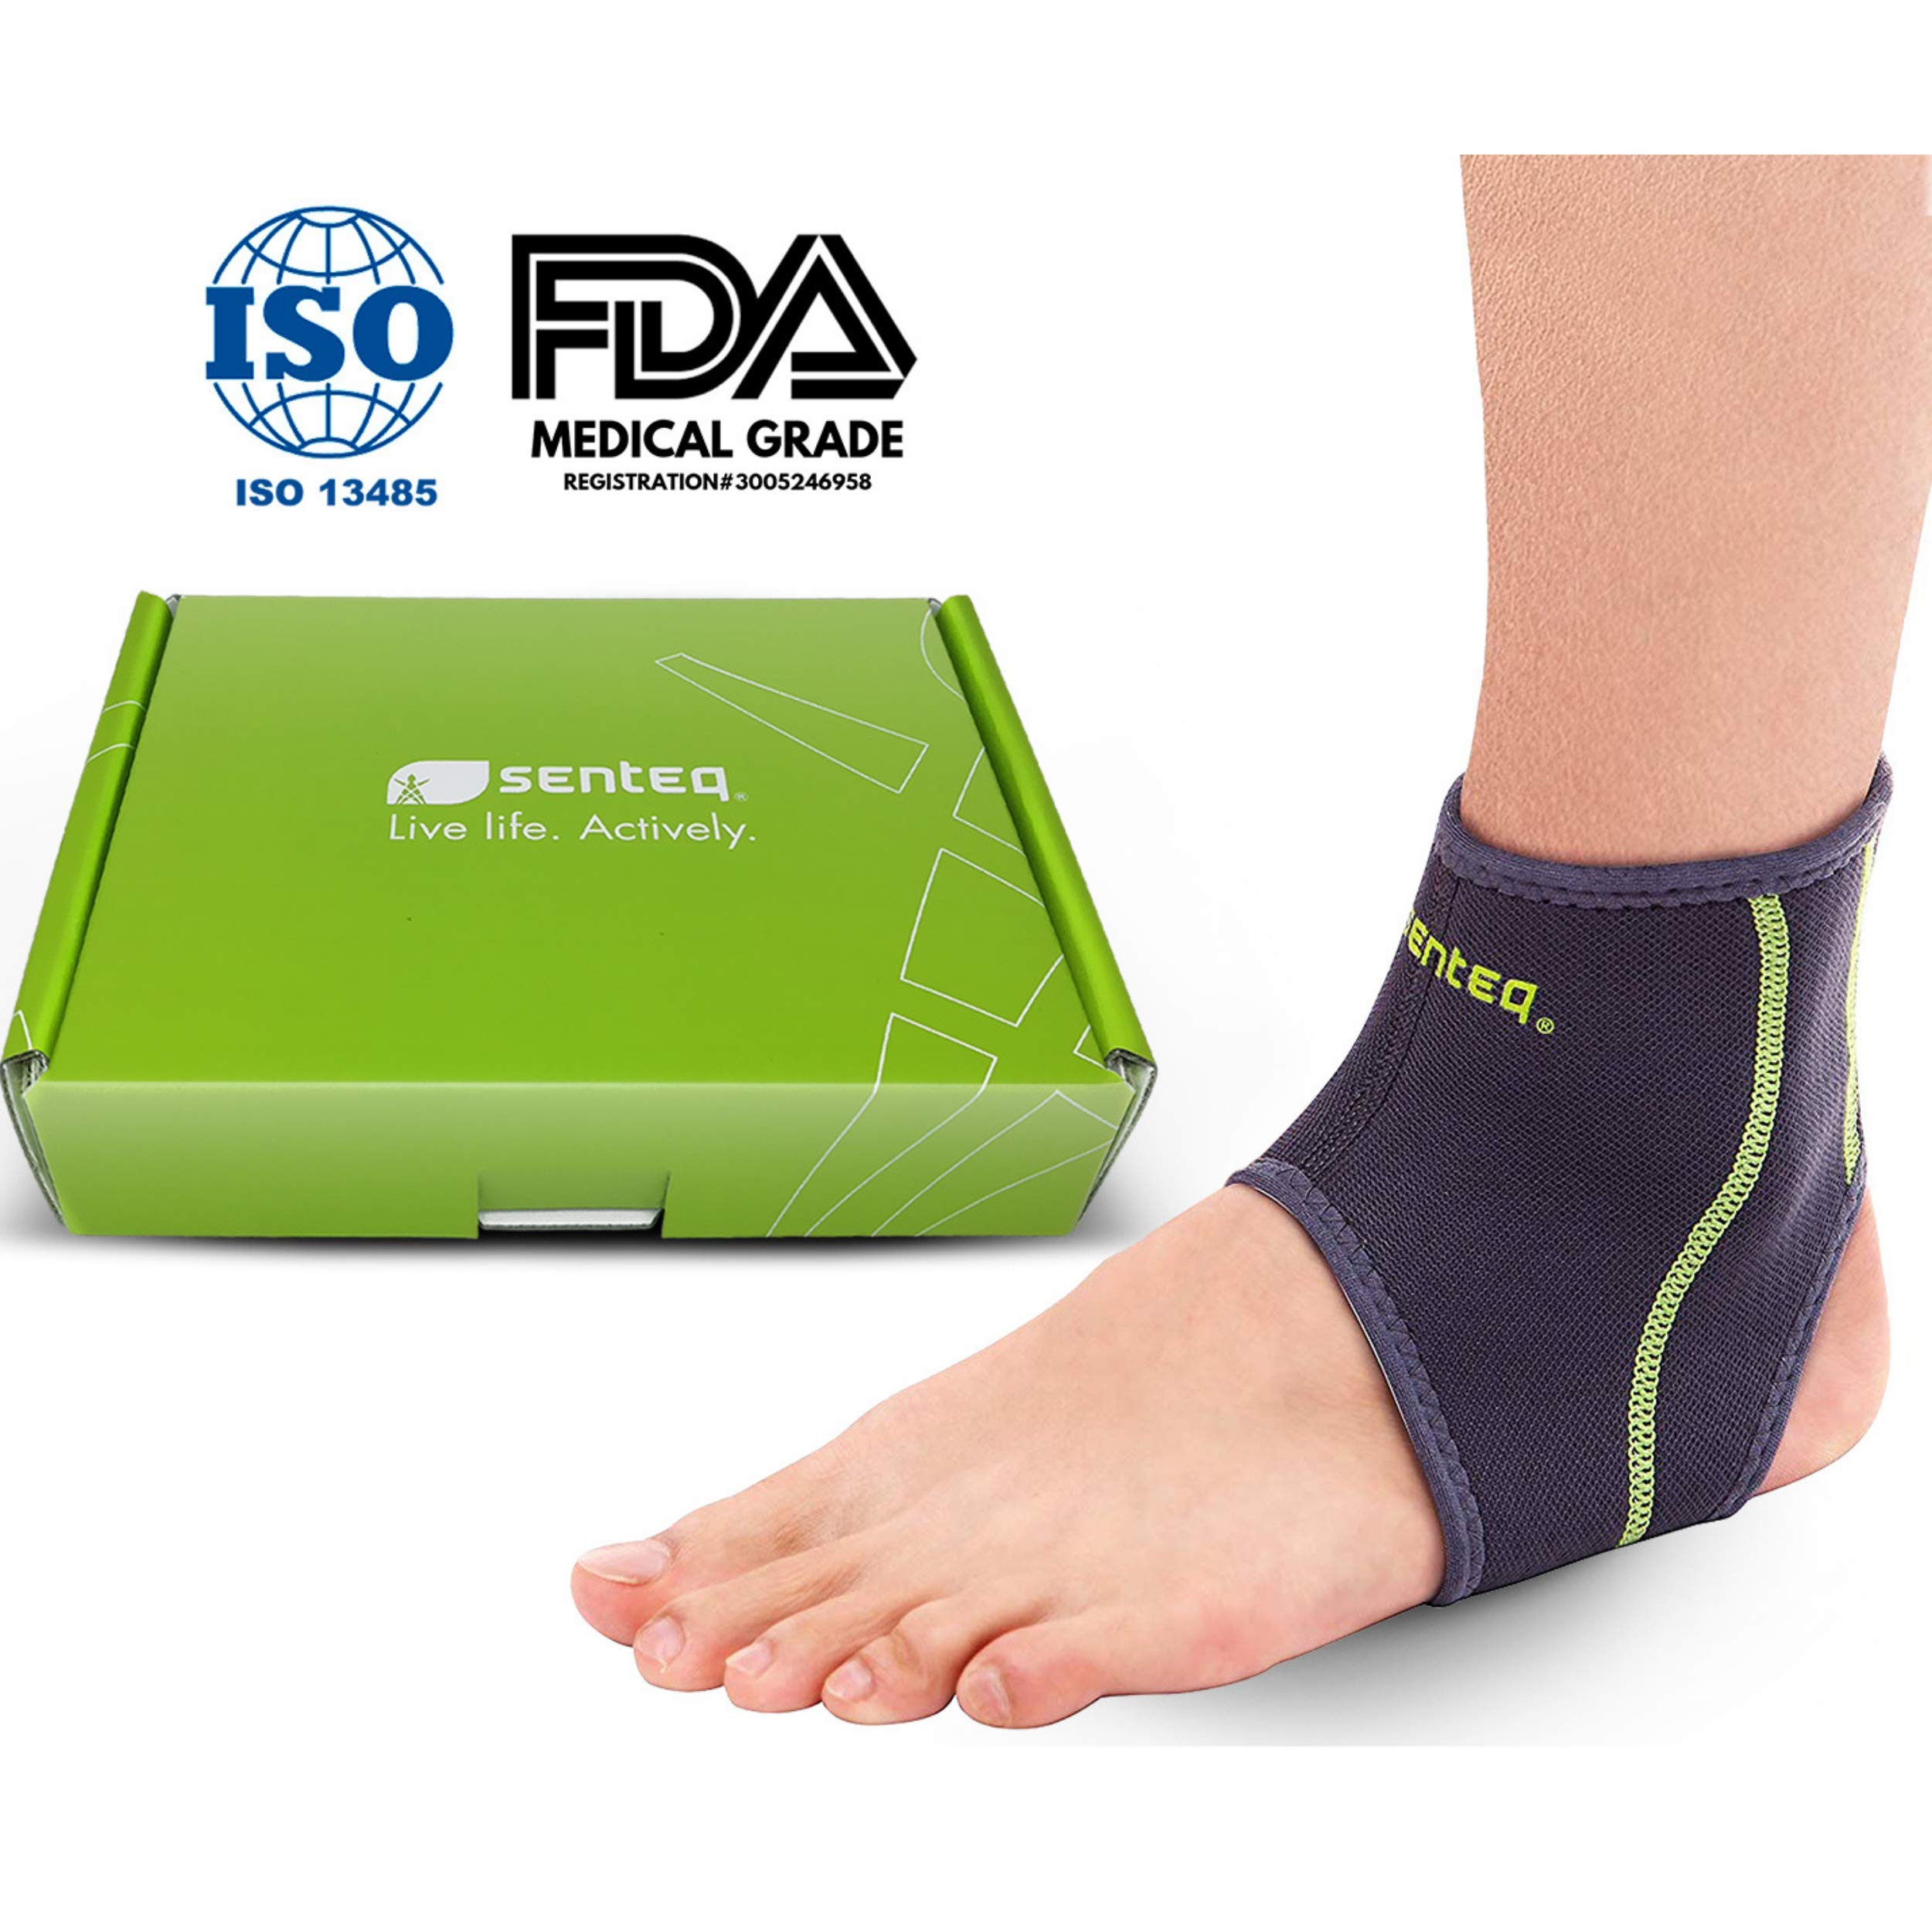 SENTEQ Ankle Brace - Provides Support, Compression and Pain Relief. Medical Grade and FDA Approved for Sprains, Strains, Arthritis and Torn Tendons in Foot and Ankle (Size XXL)